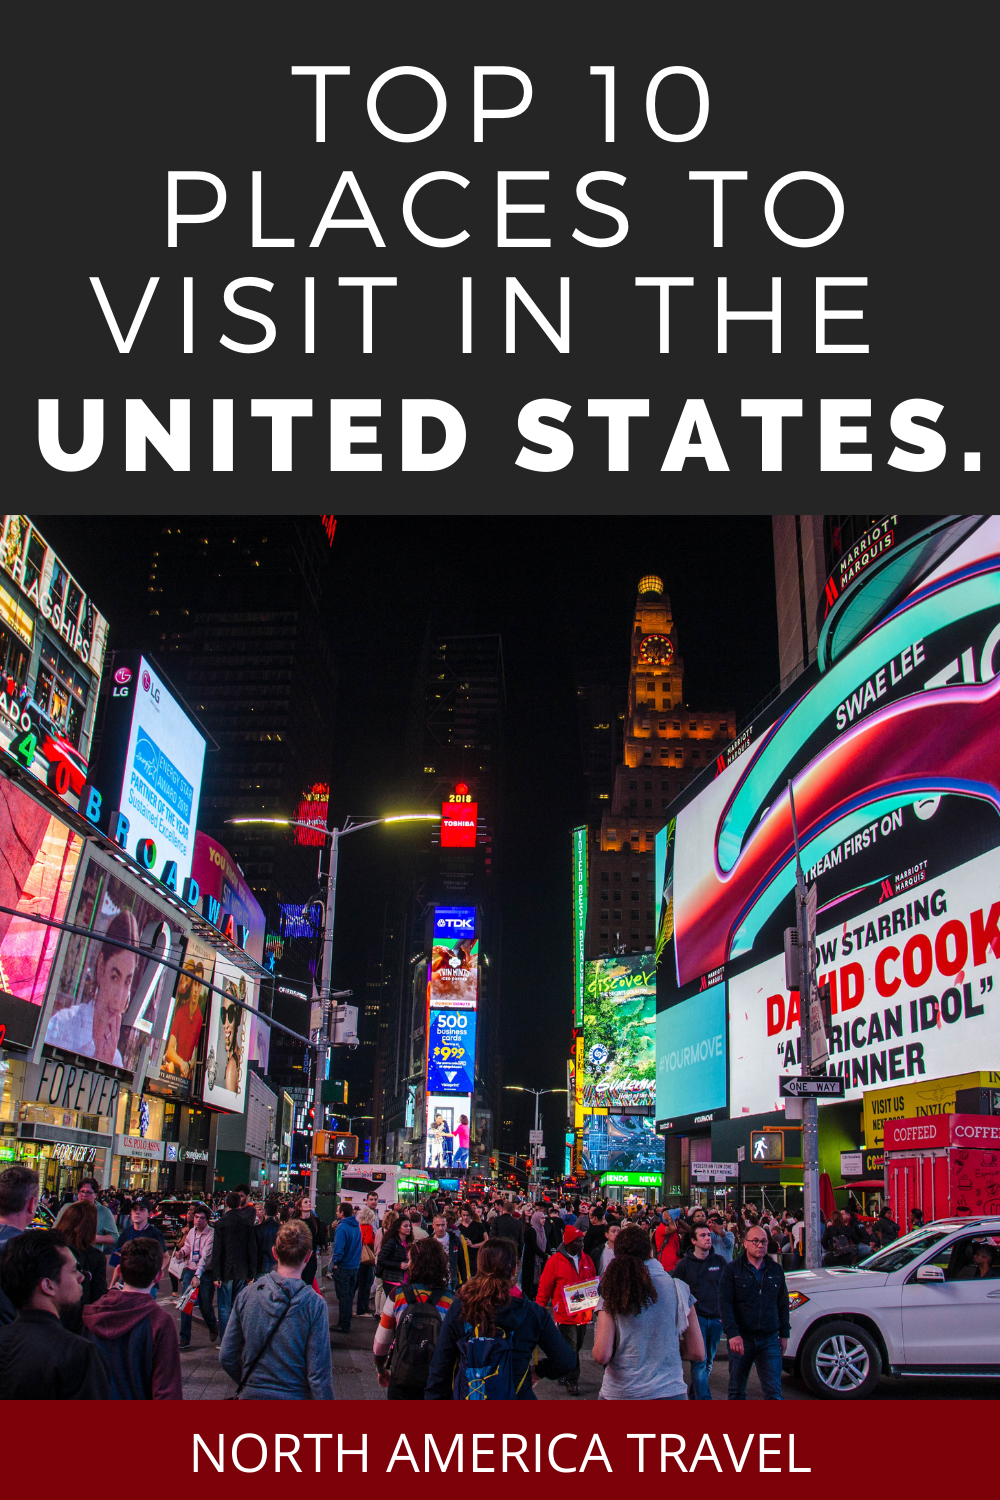 Top 10 Places And Destinations To Visit In The United States Tourist Attraction Tourist North America Travel